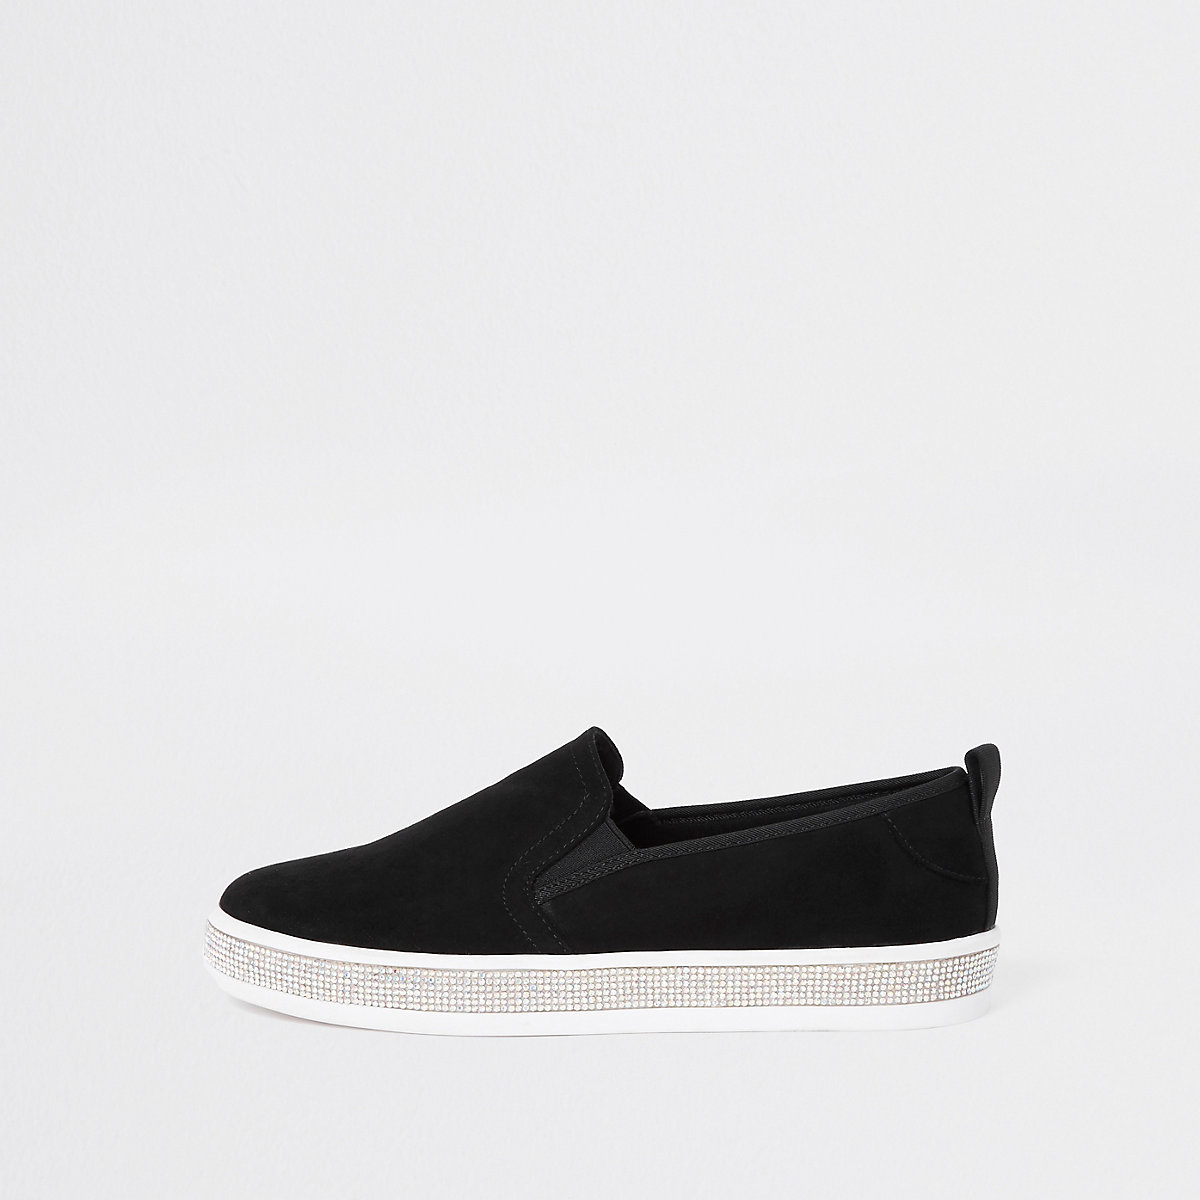 Black diamante sole trim plimsolls